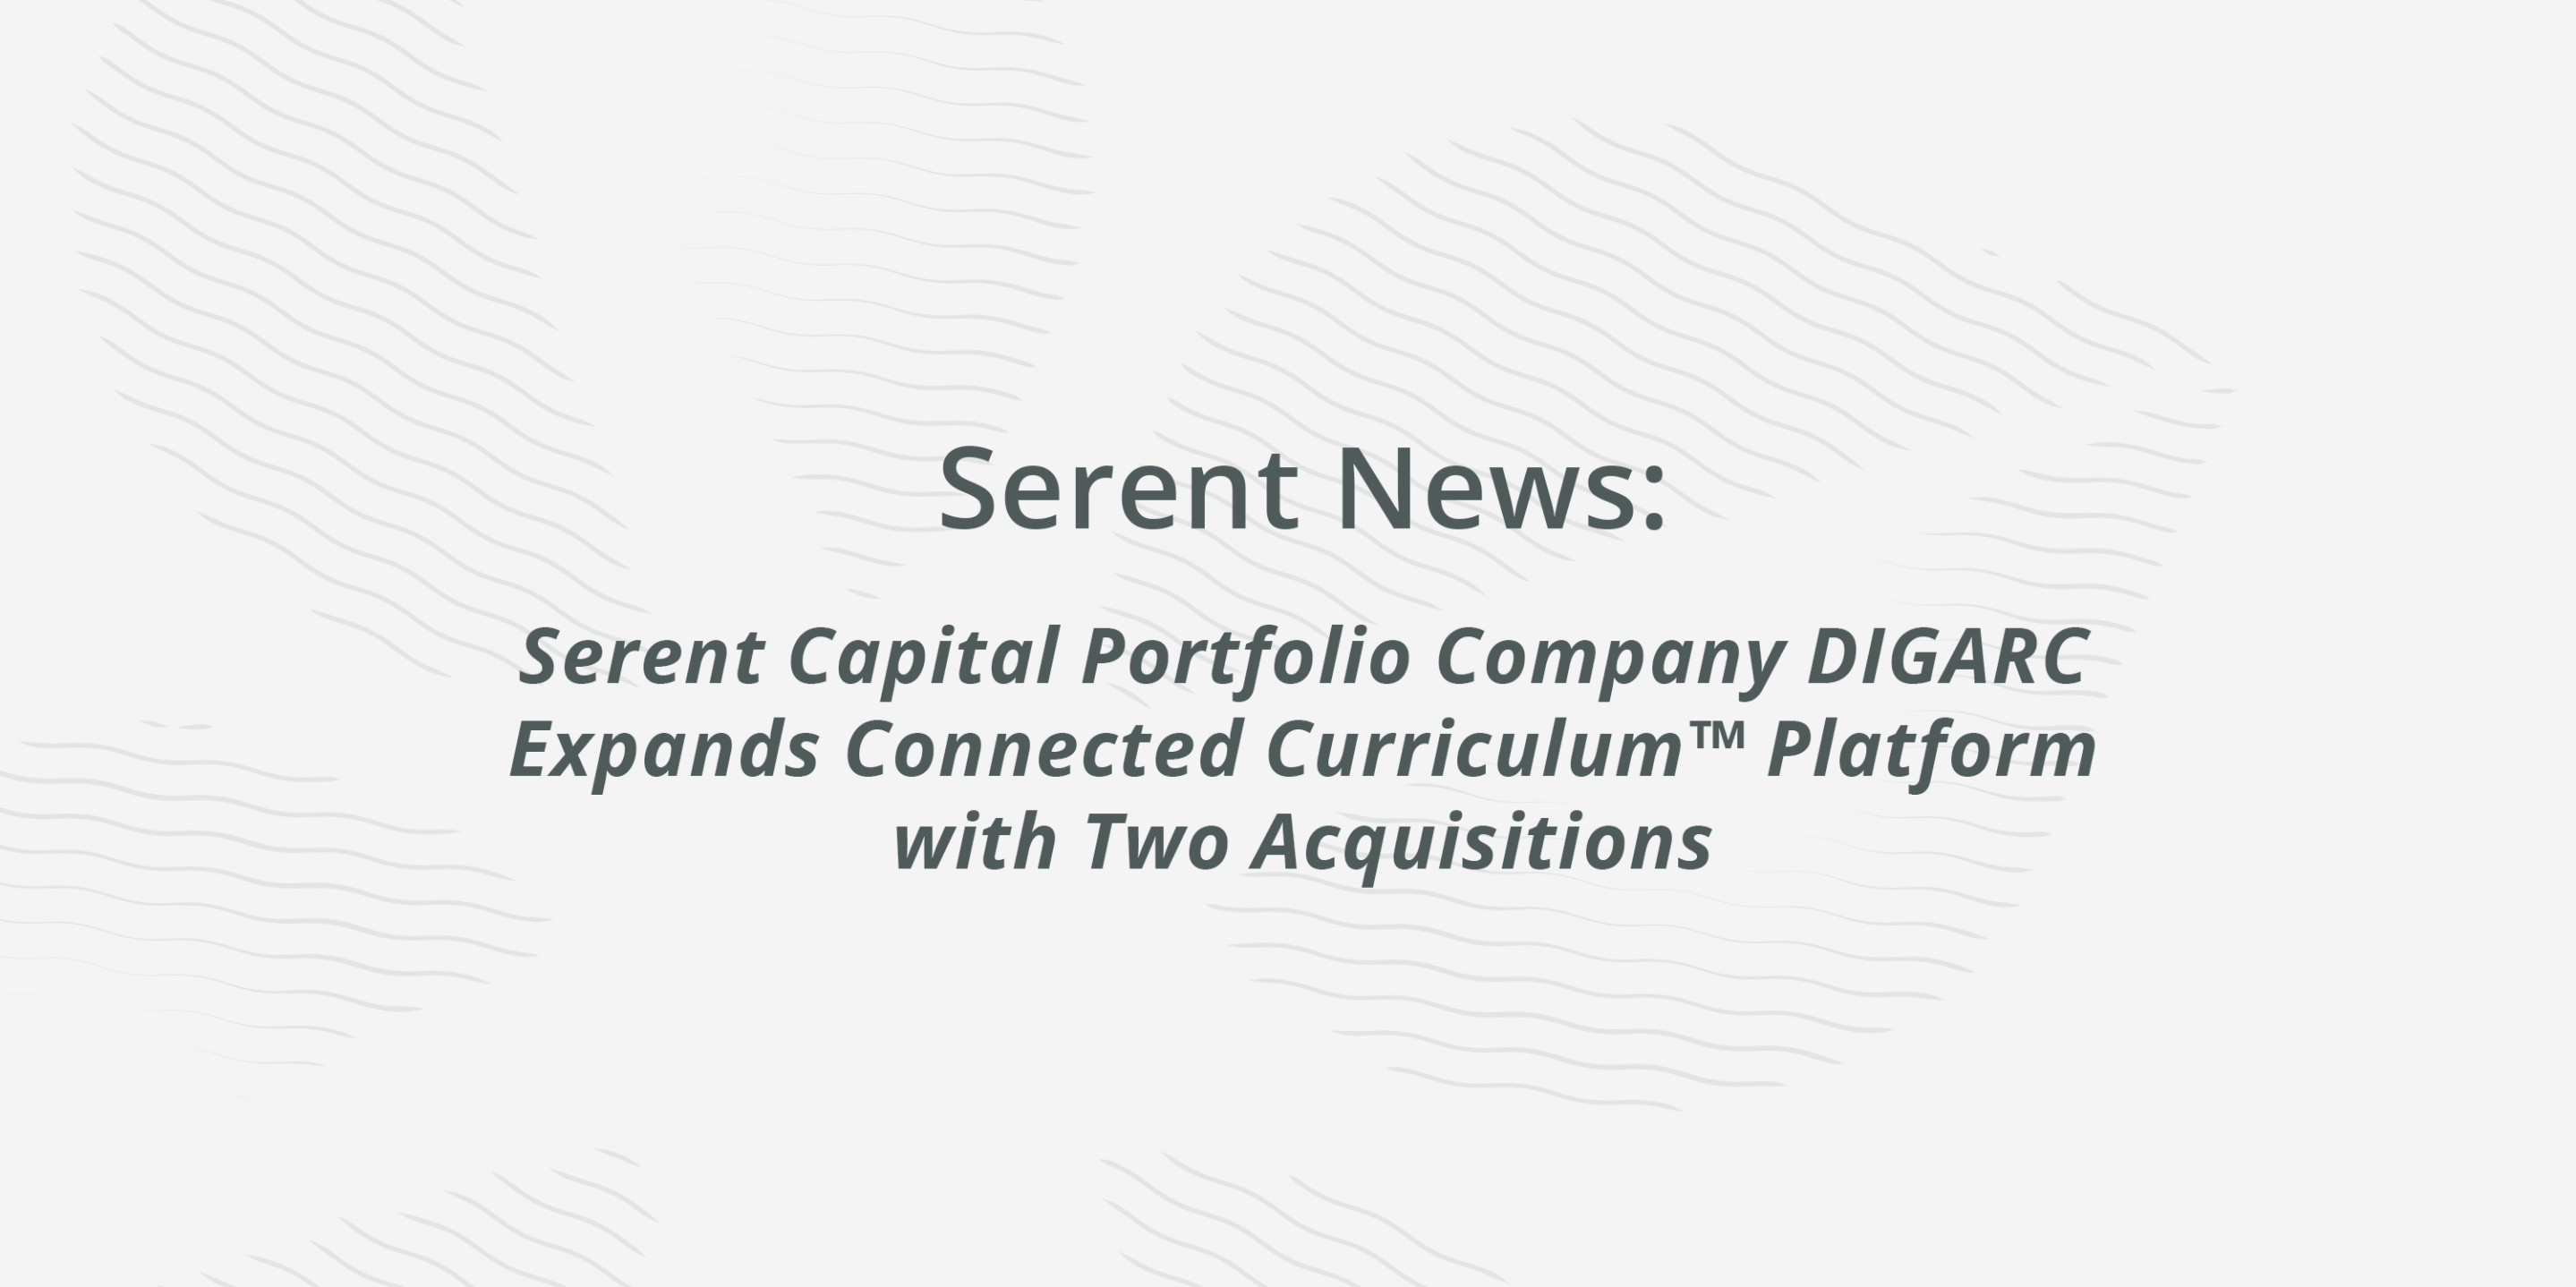 Serent Capital Portfolio Company DIGARC Expands Connected Curriculum™ Platform with Two Acquisitions